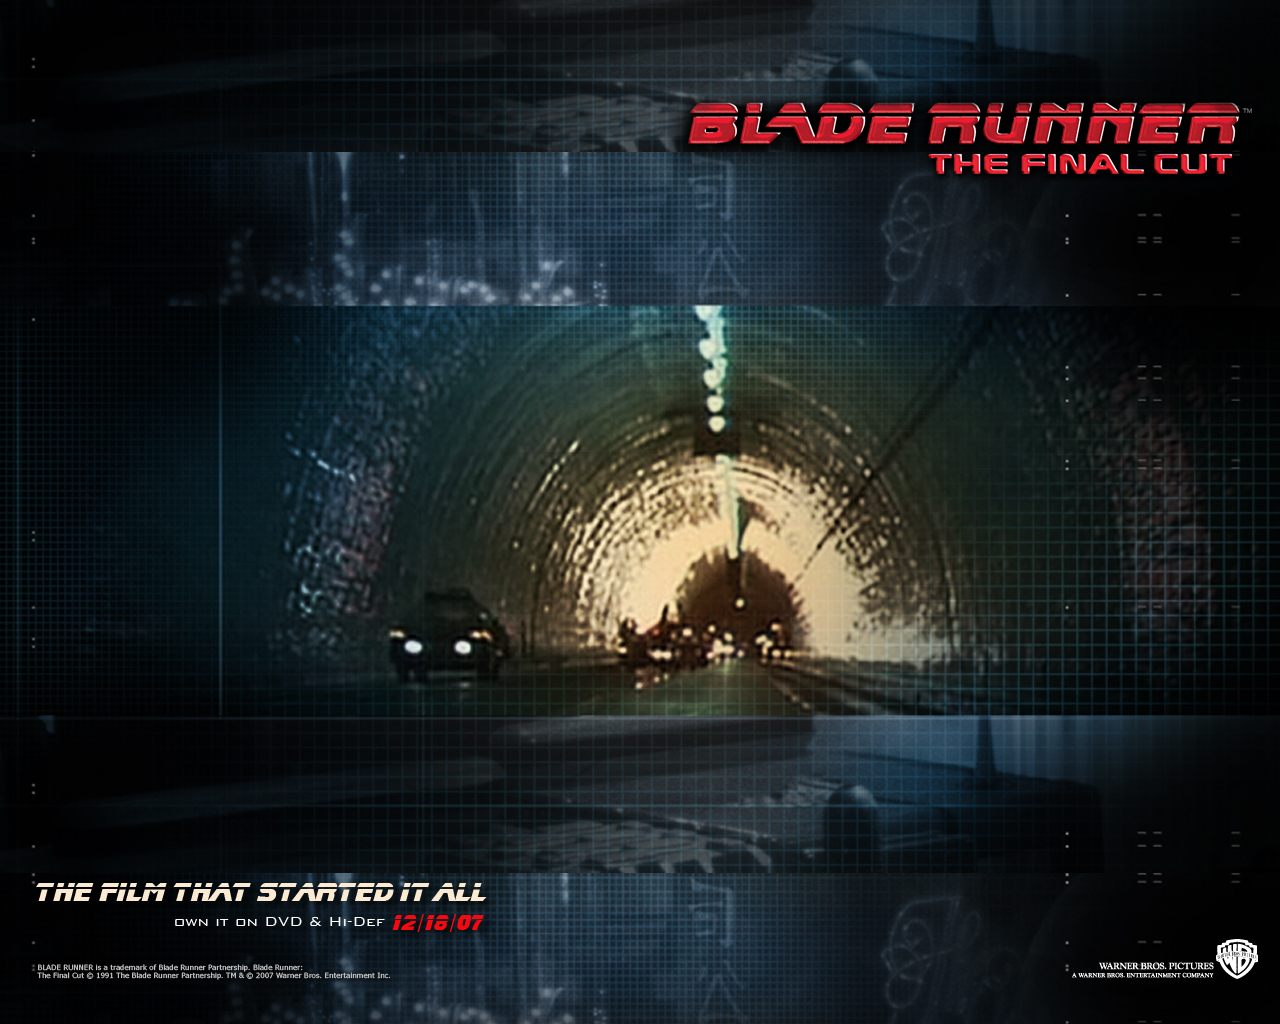 Official Blade Runner Wallpaper   Blade Runner Wallpaper 8207501 1280x1024